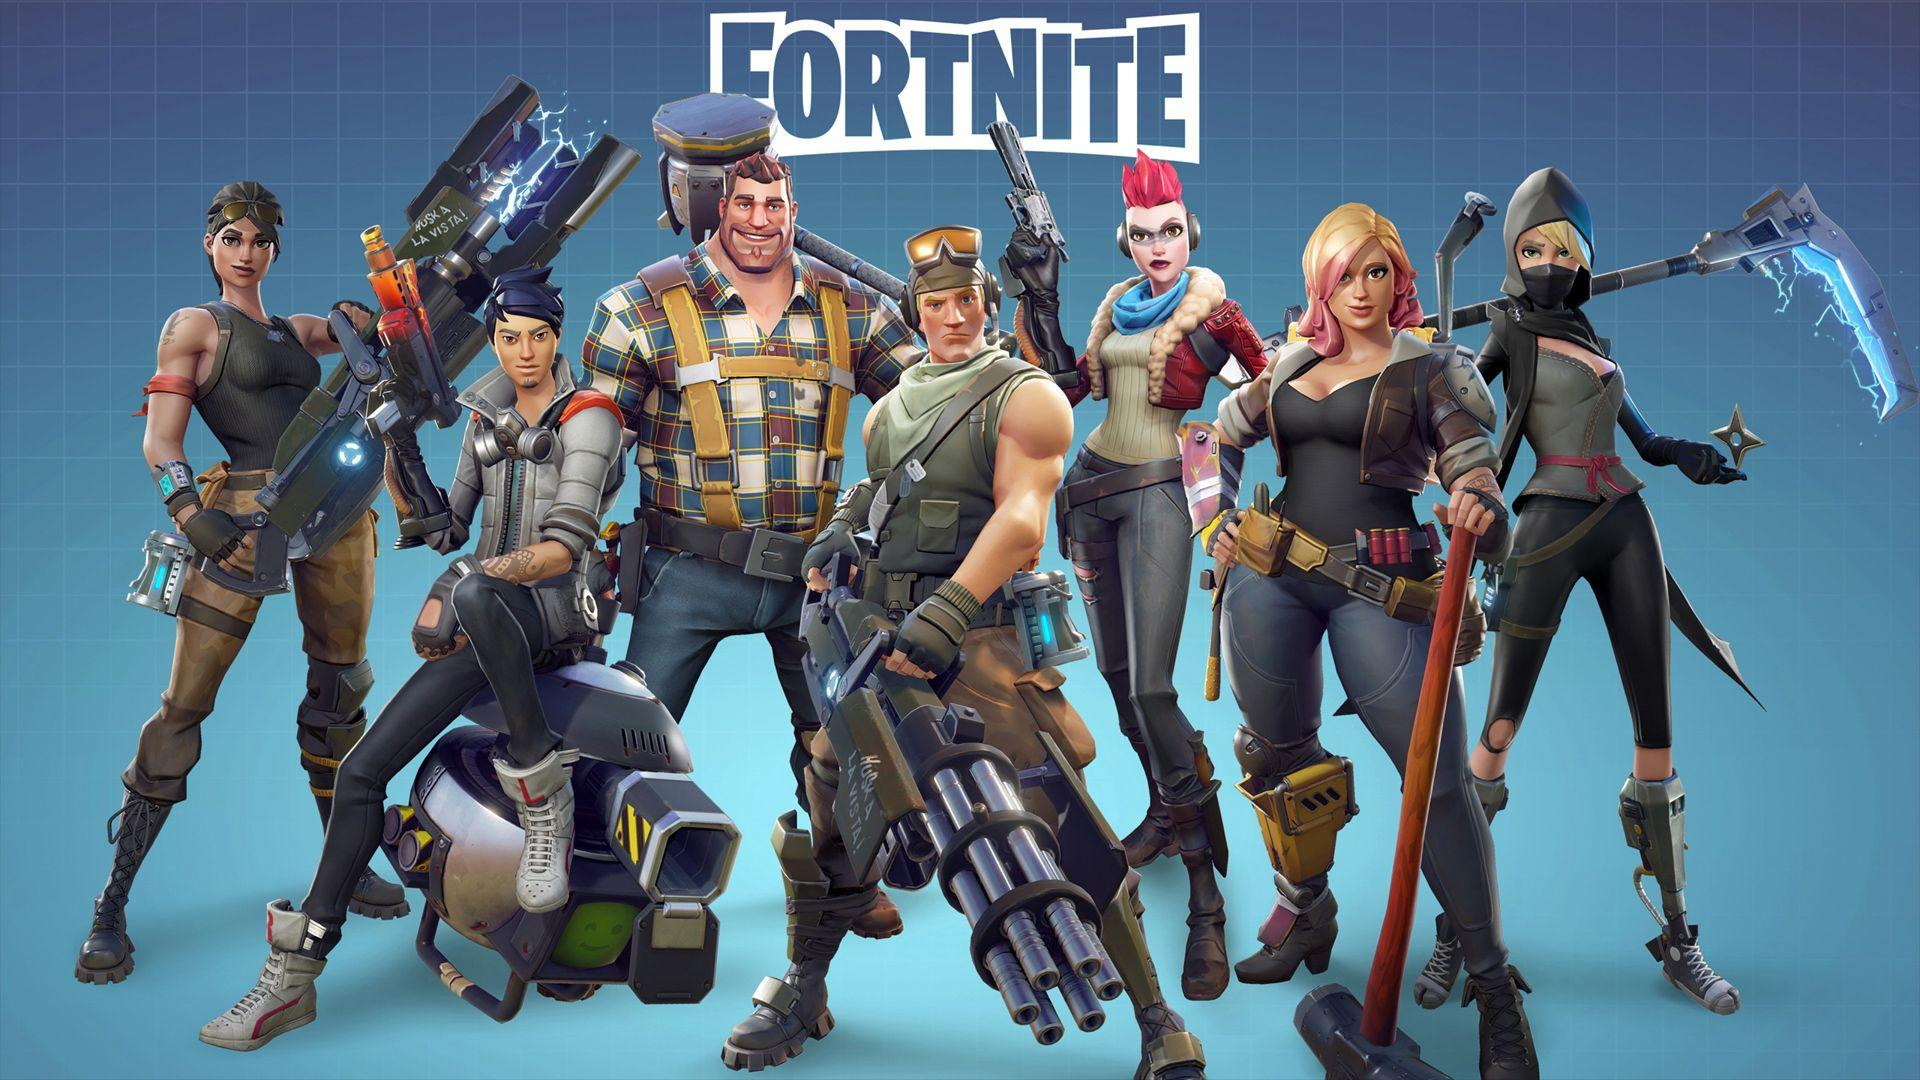 Battle Royale w Fortnite. Wallpaper from Fortnite - gamepressure.com